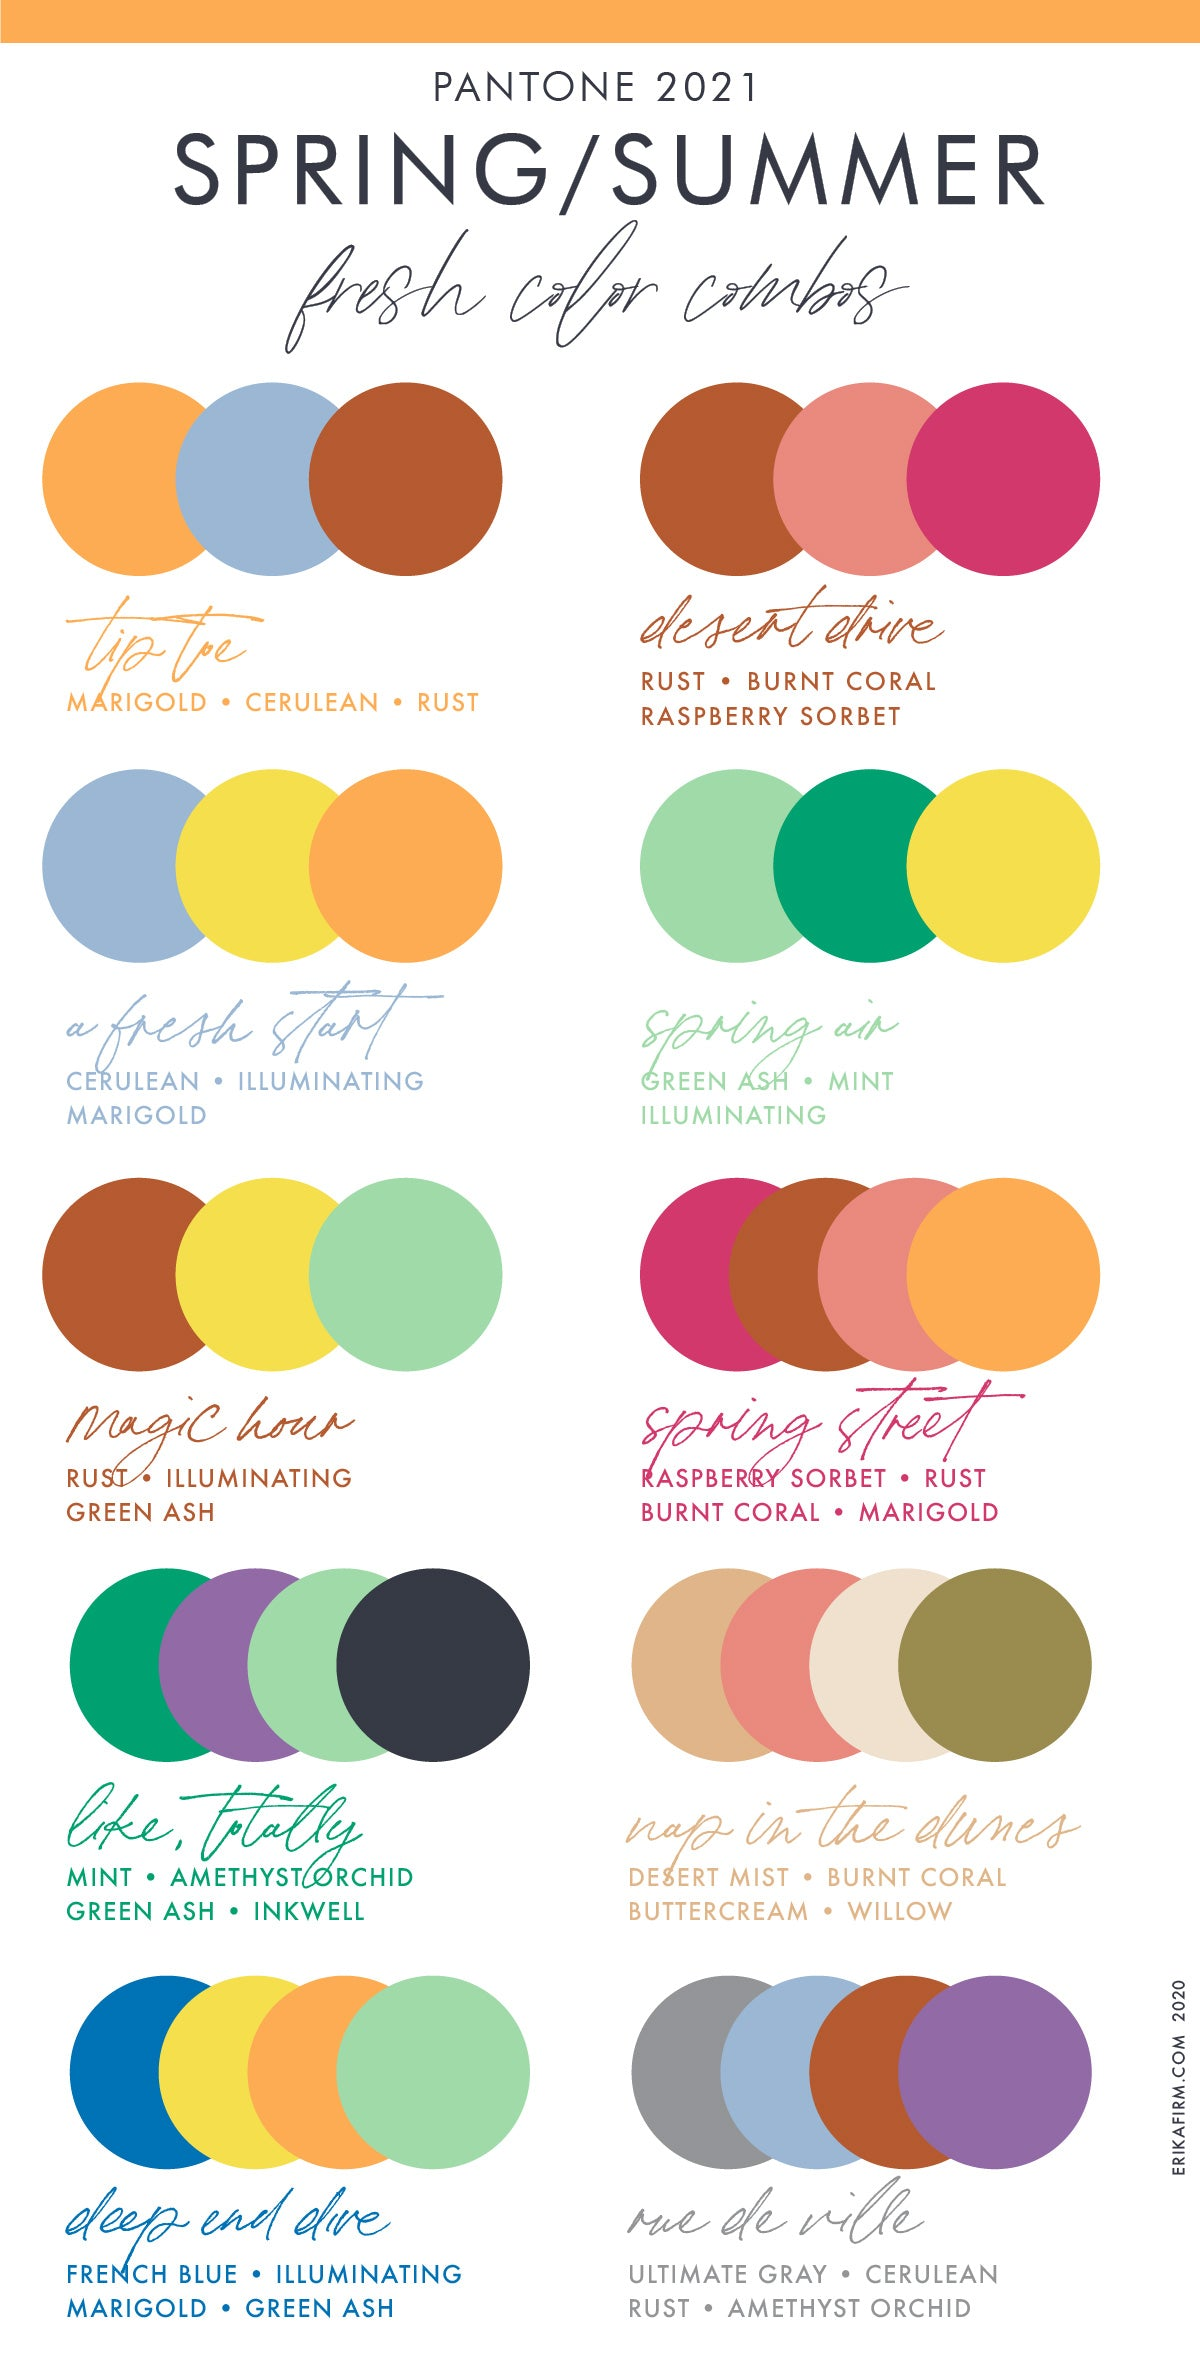 Spring 2021 Summer 2021 Pantone Color Trends Report Color Combinations by Erika Firm